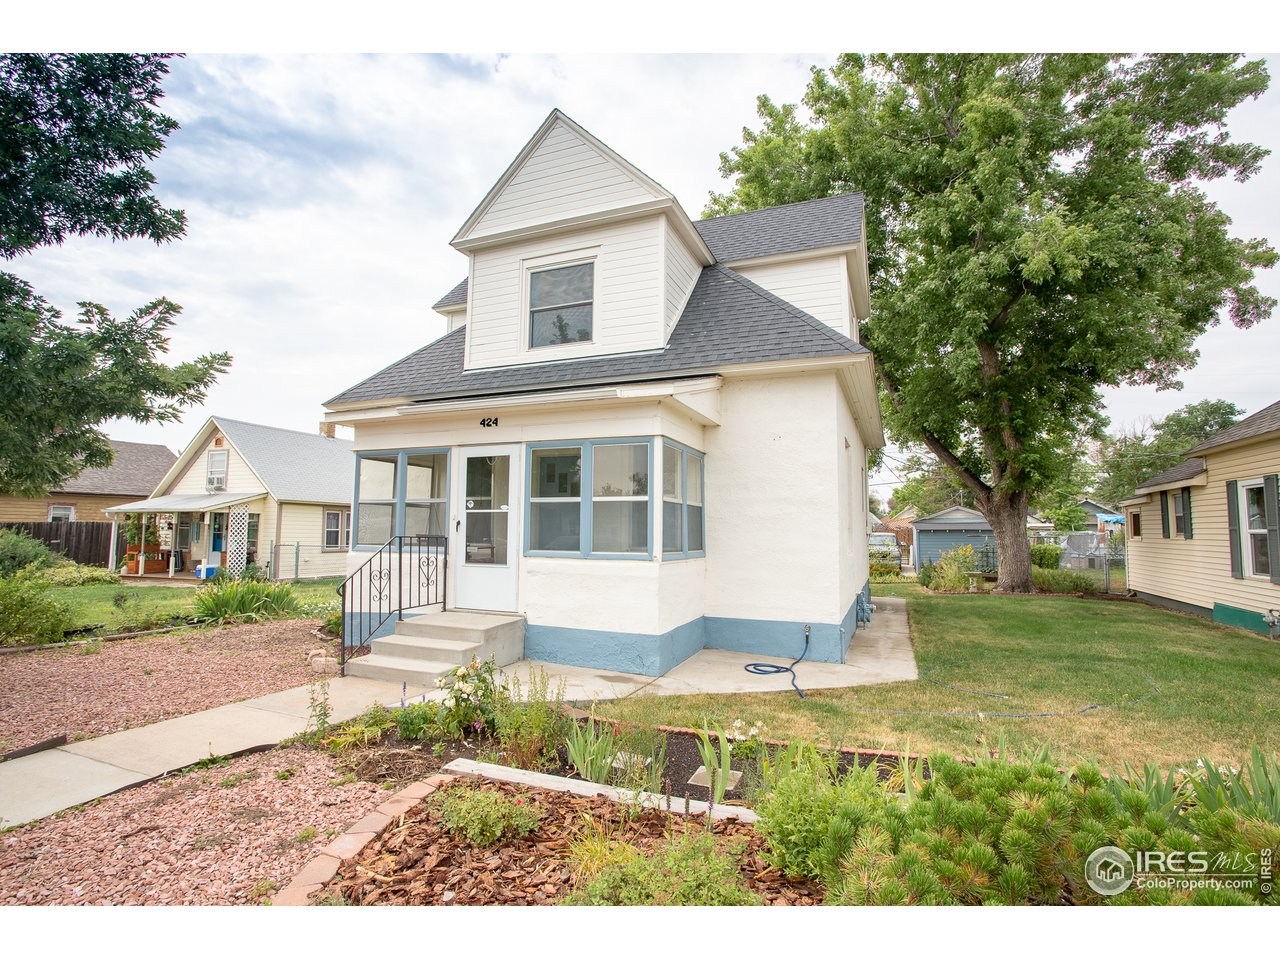 424 7th St, Greeley CO 80631